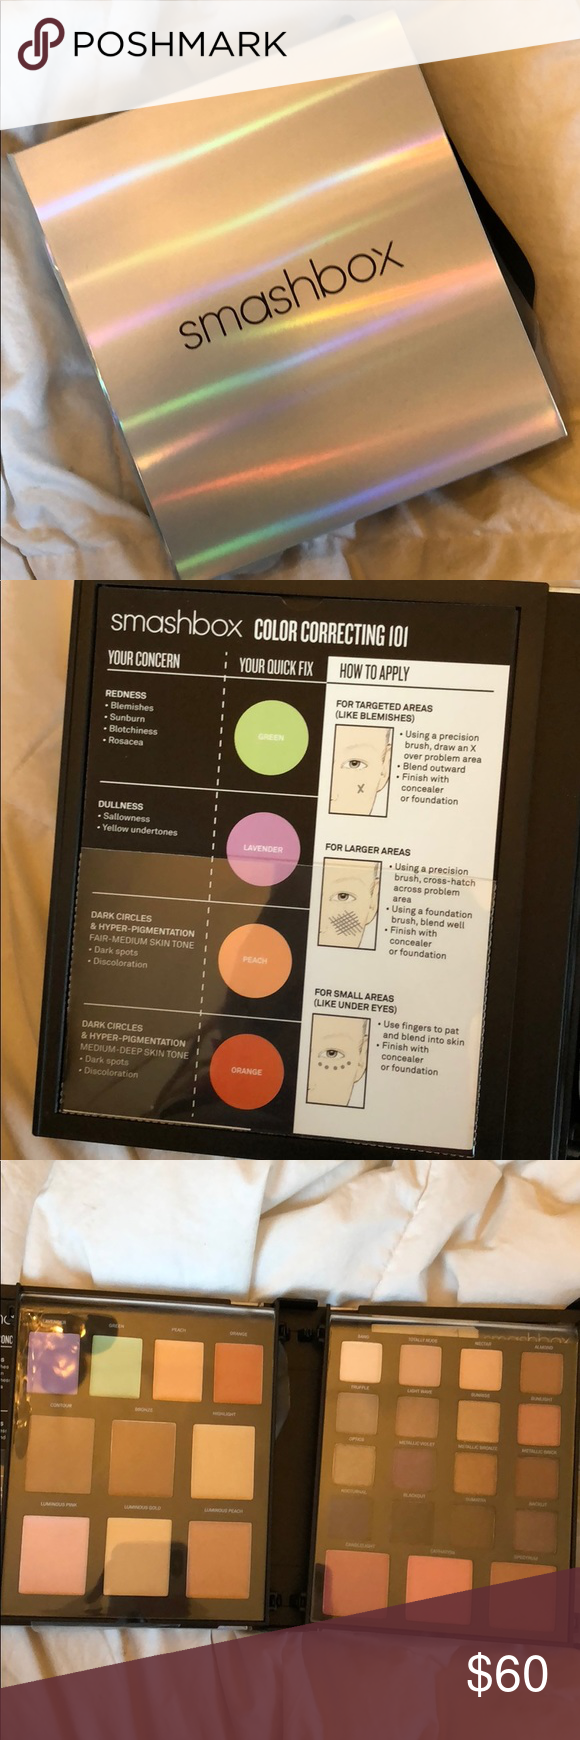 Smashbox Brand New Lighting Theory Palette Color